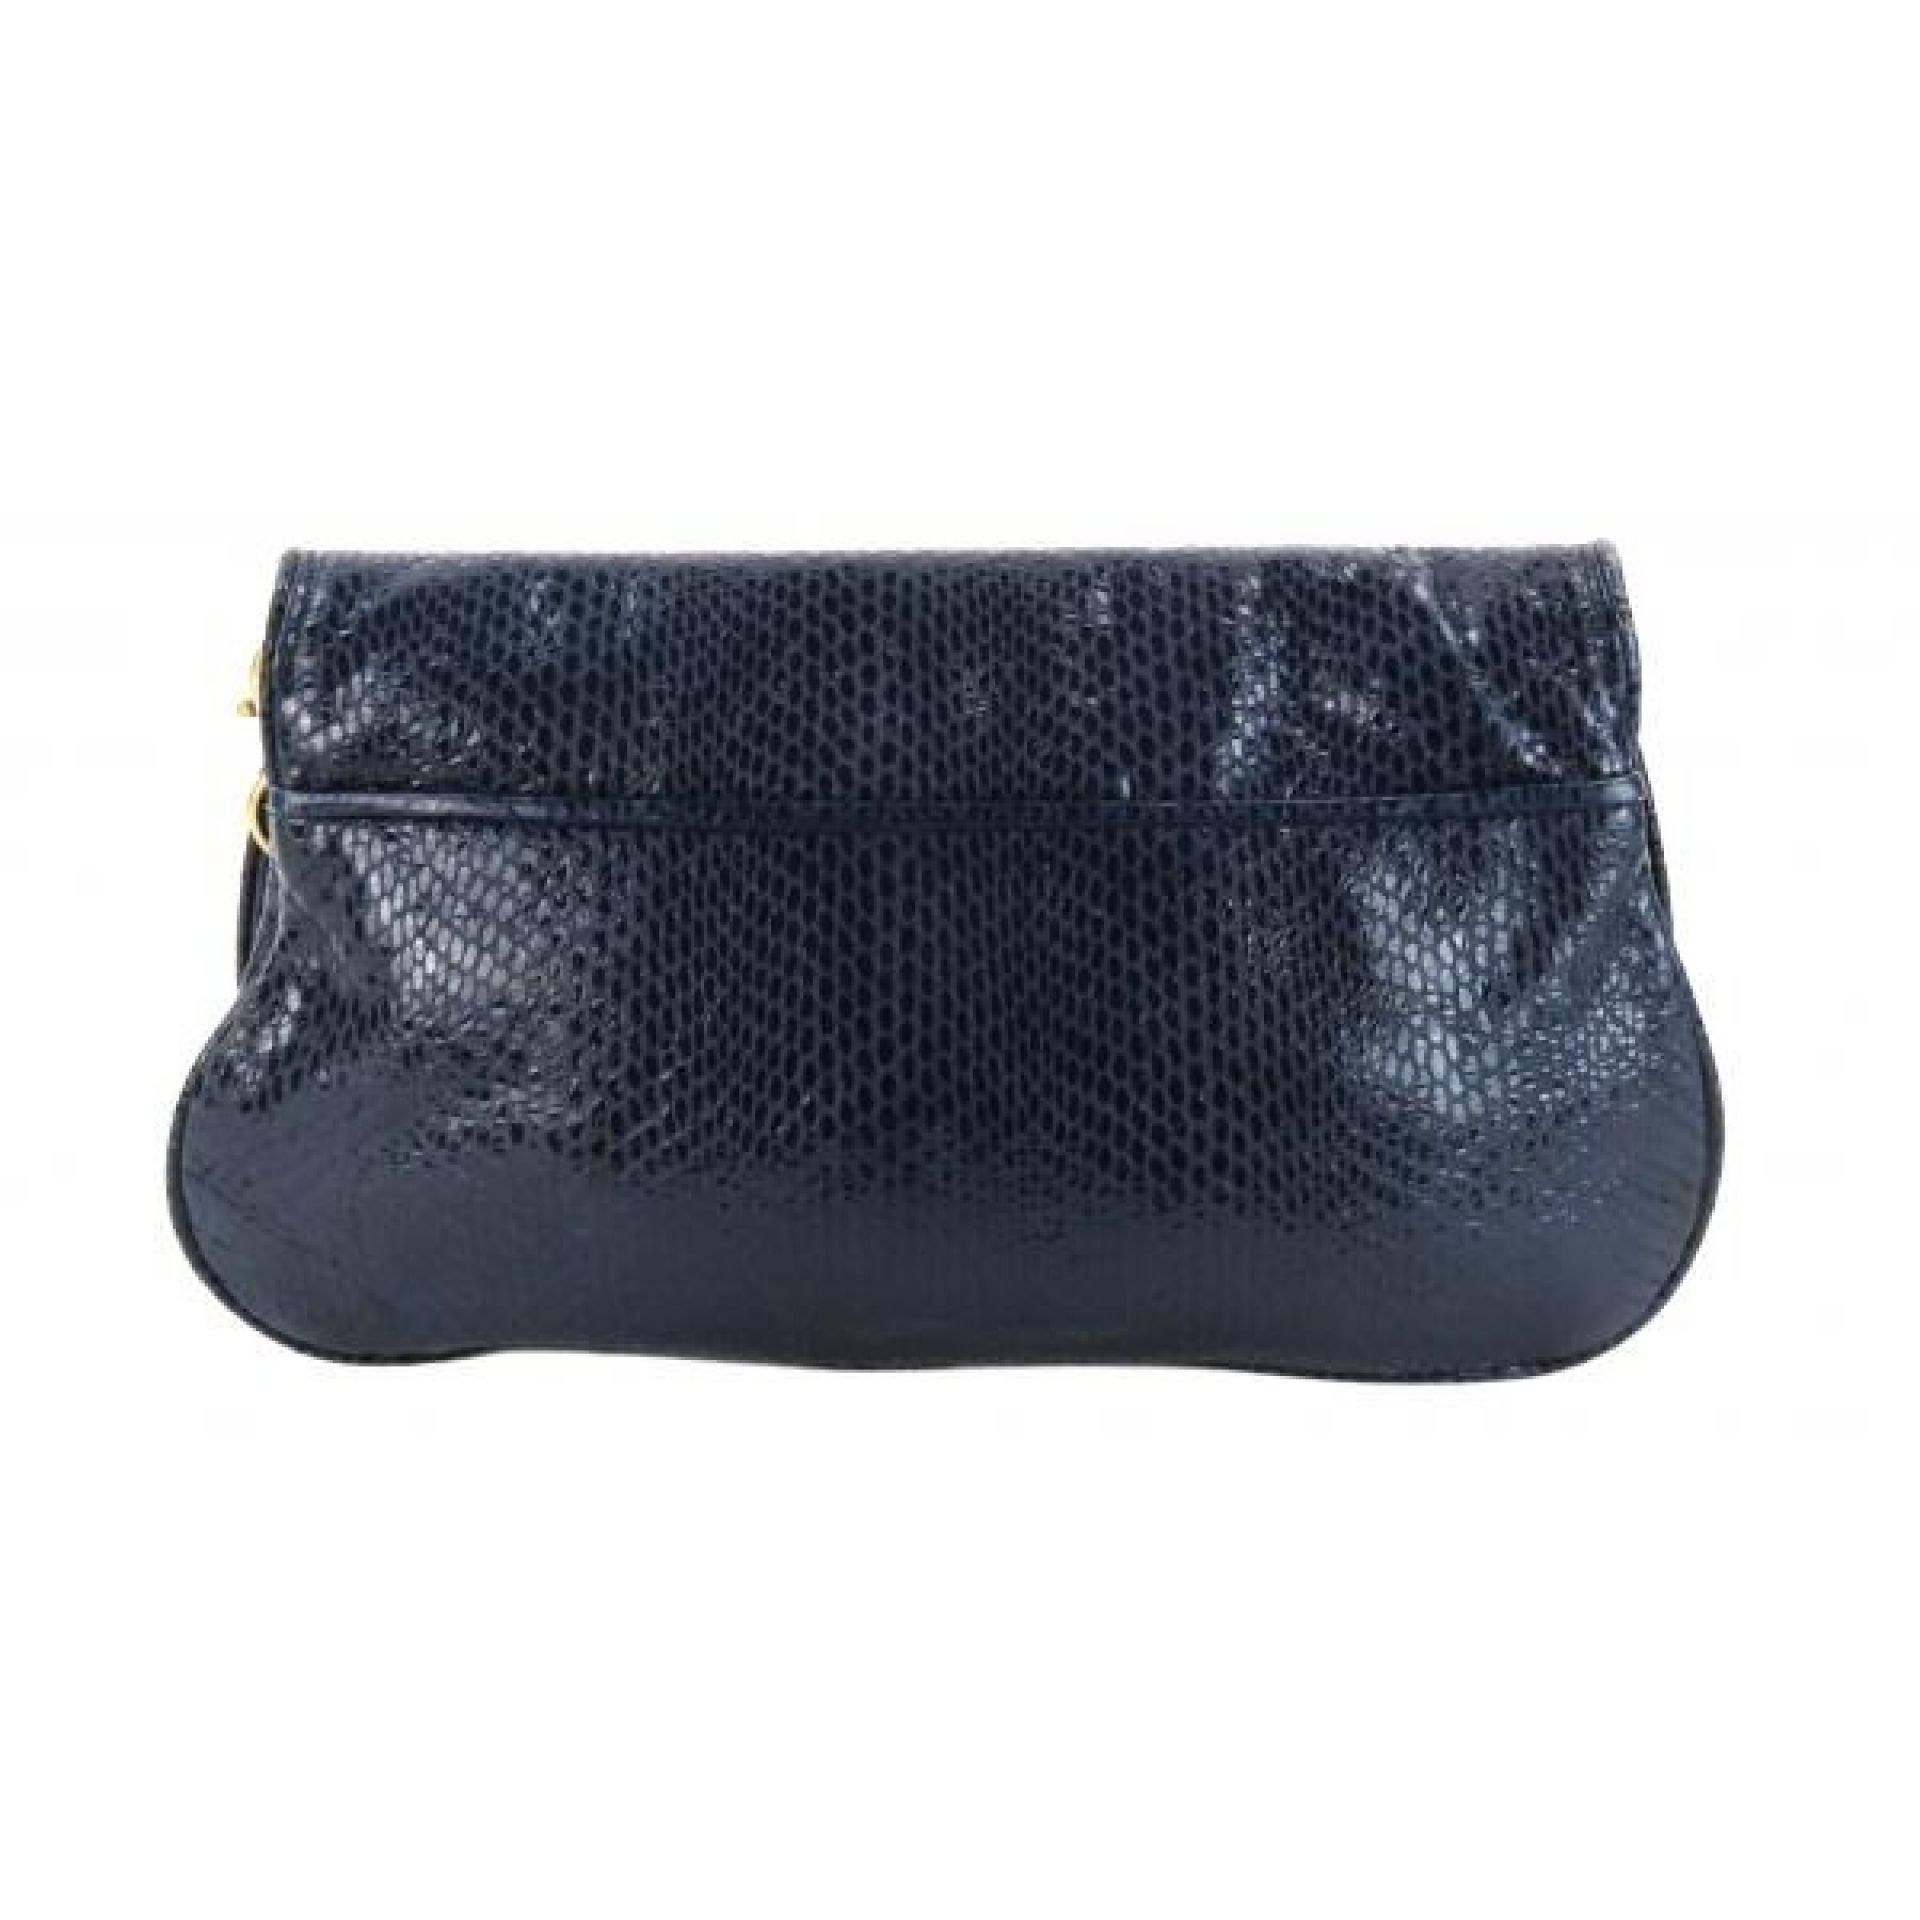 Tory Burch Navy Blue Snake Embossed Leather Amanda Clutch Crossbody Bag